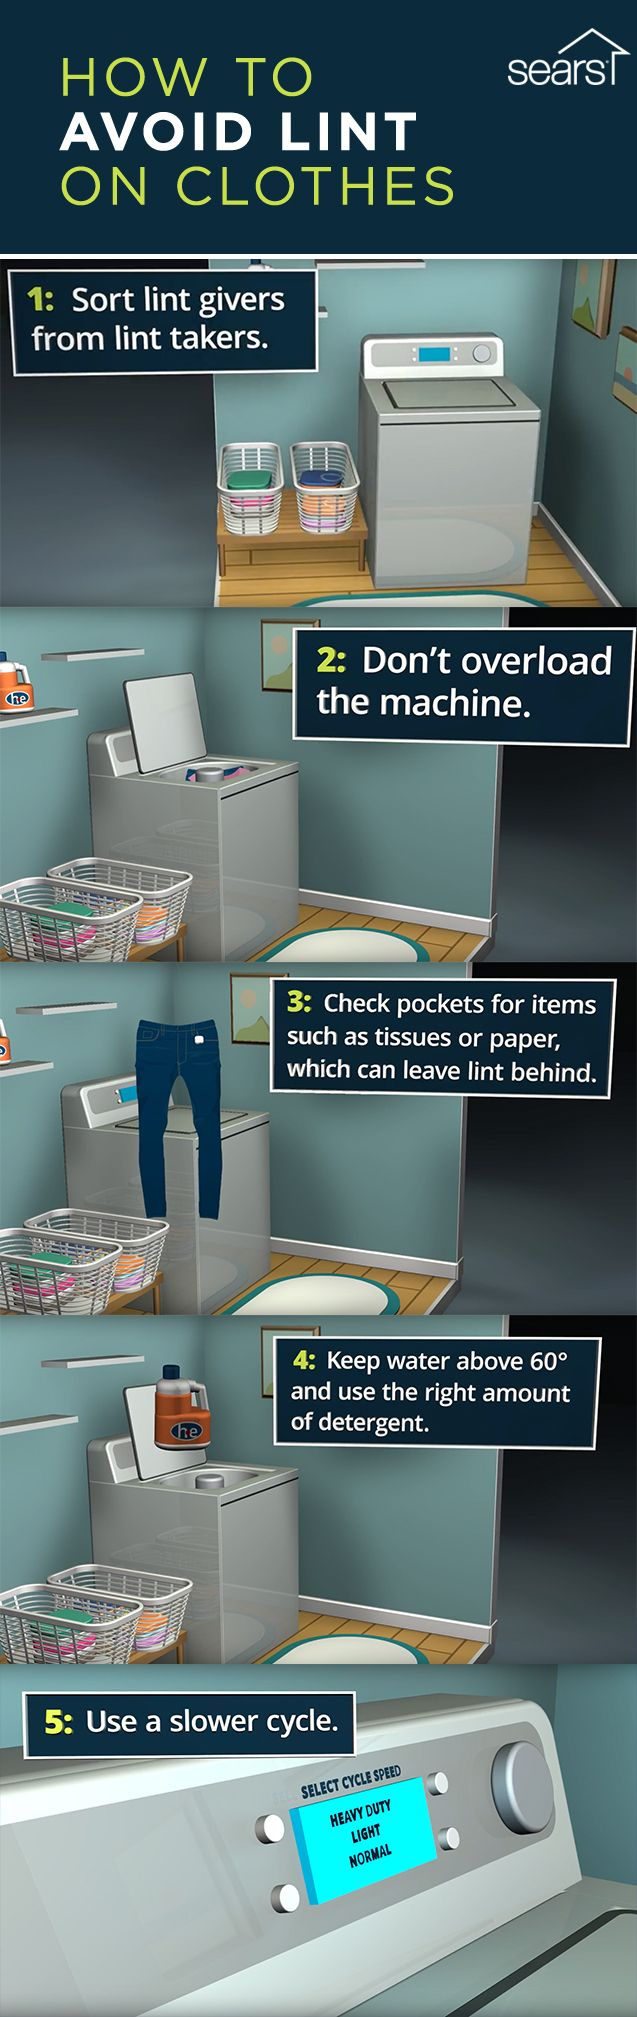 how to stop lint on clothes in washing machine